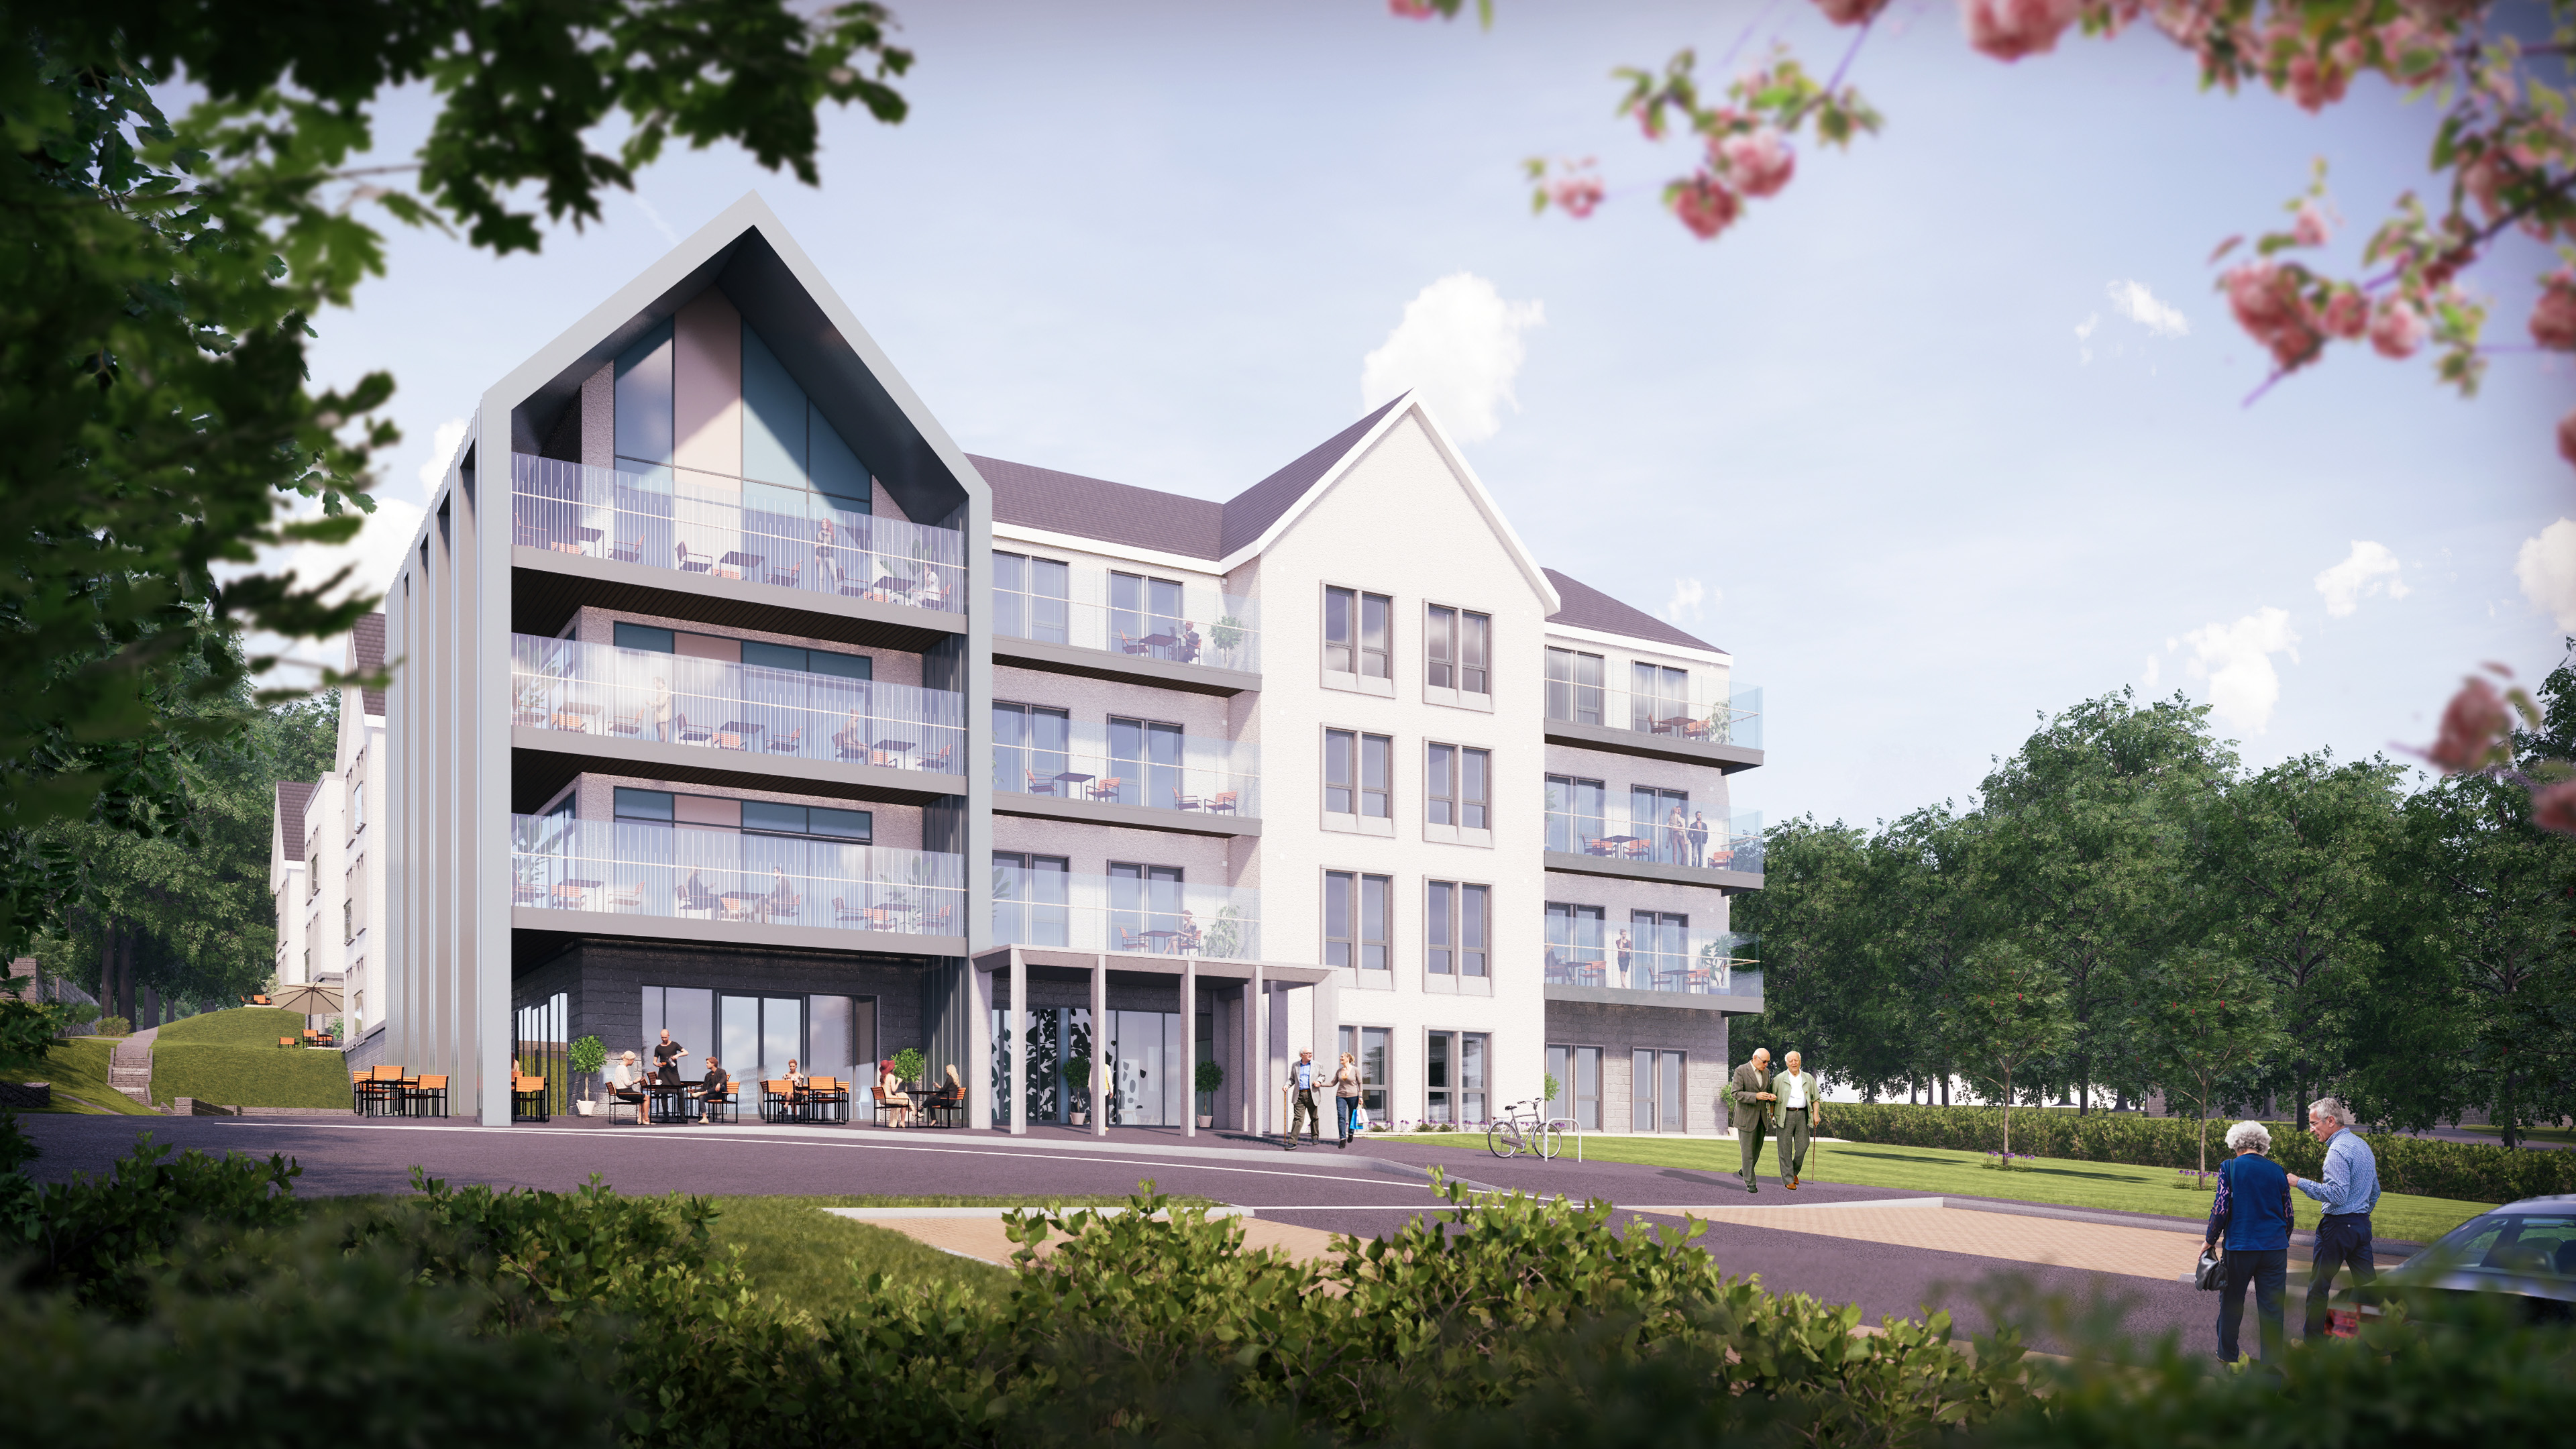 How the care home could look